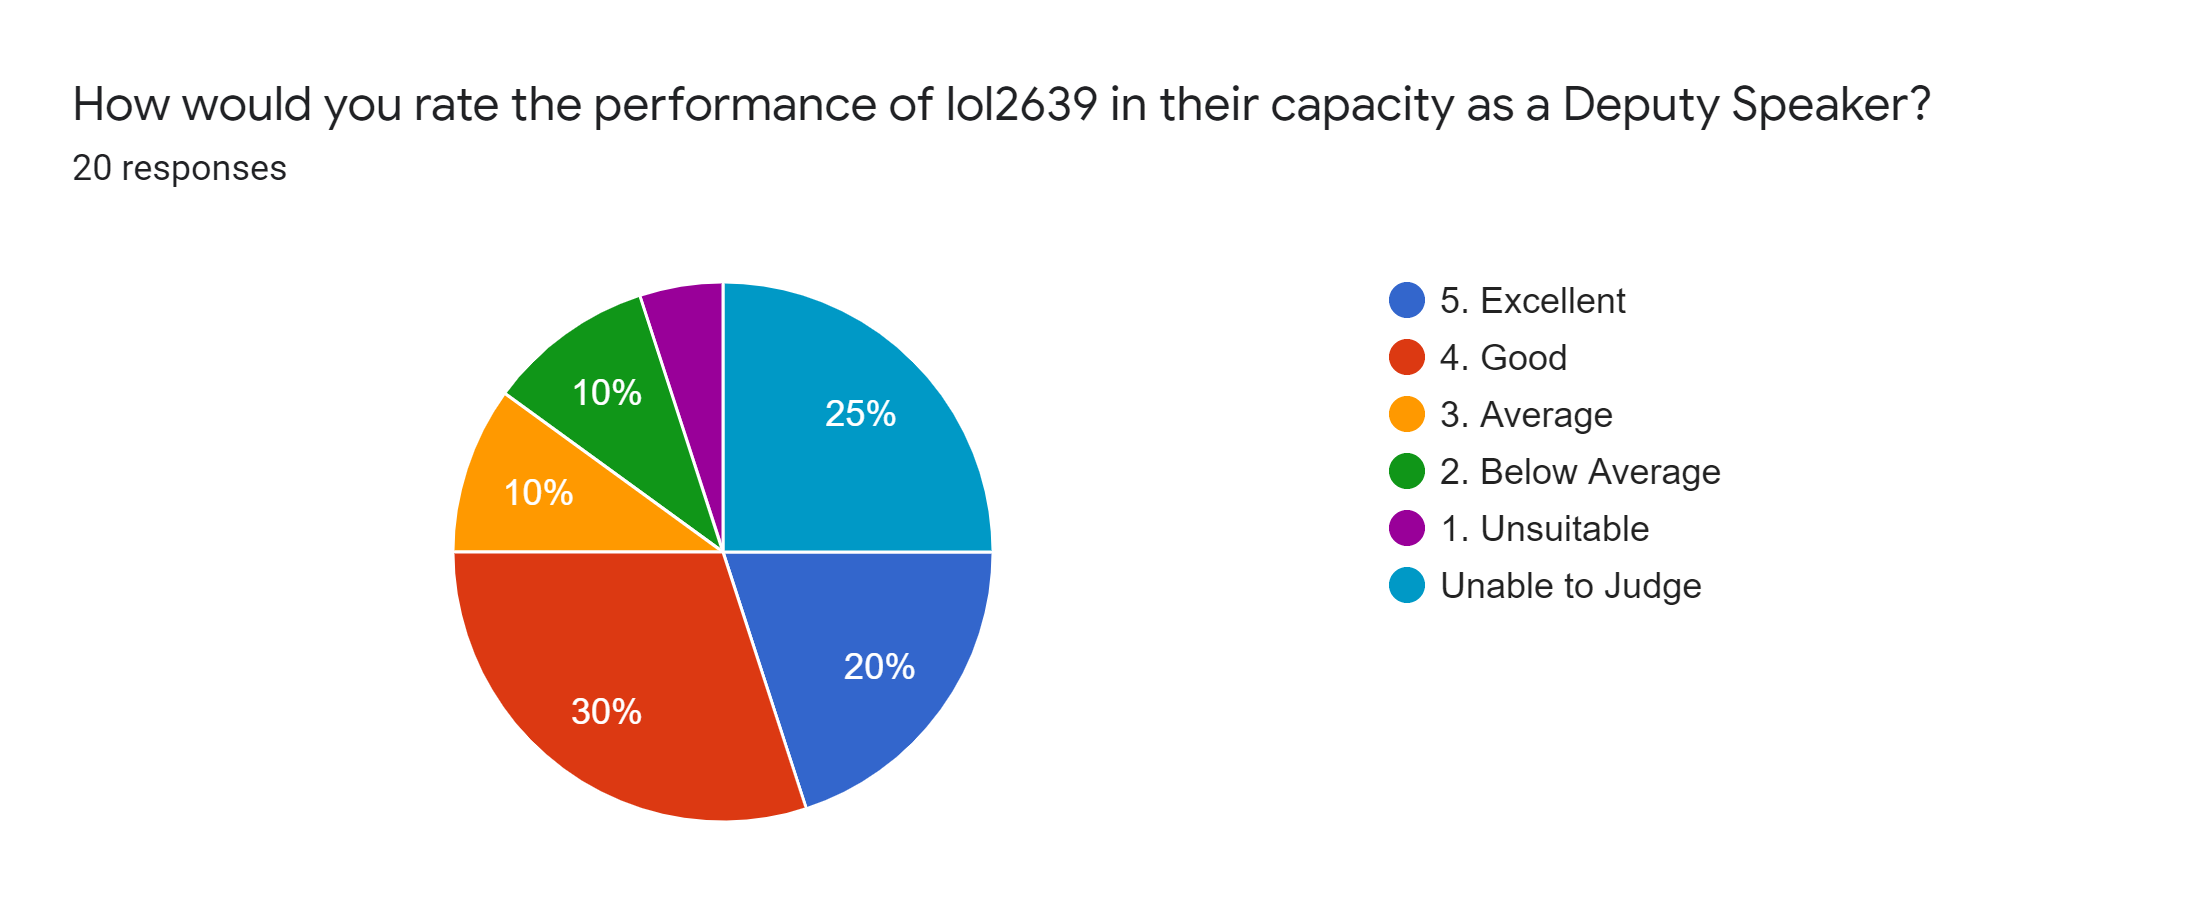 Forms response chart. Question title: How would you rate the performance of lol2639 in their capacity as a Deputy Speaker?. Number of responses: 20 responses.